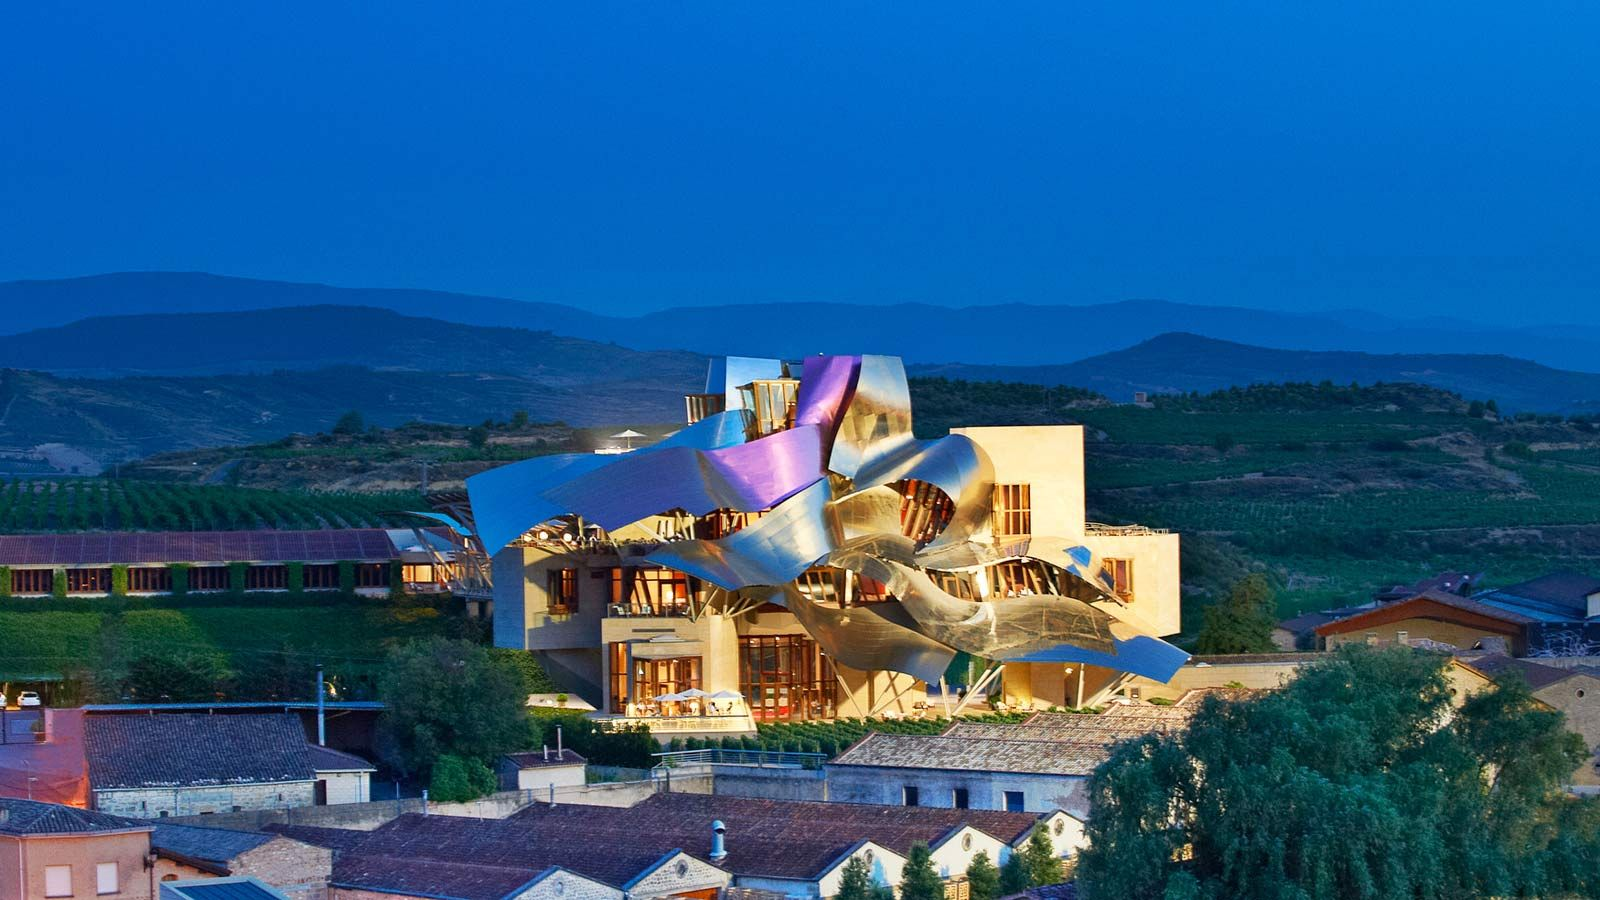 The Hotel Marqués De Riscal Is A Luxury Collection And Spa In Heart Of Vineyards Rioja Alavesa Wine Region Spain